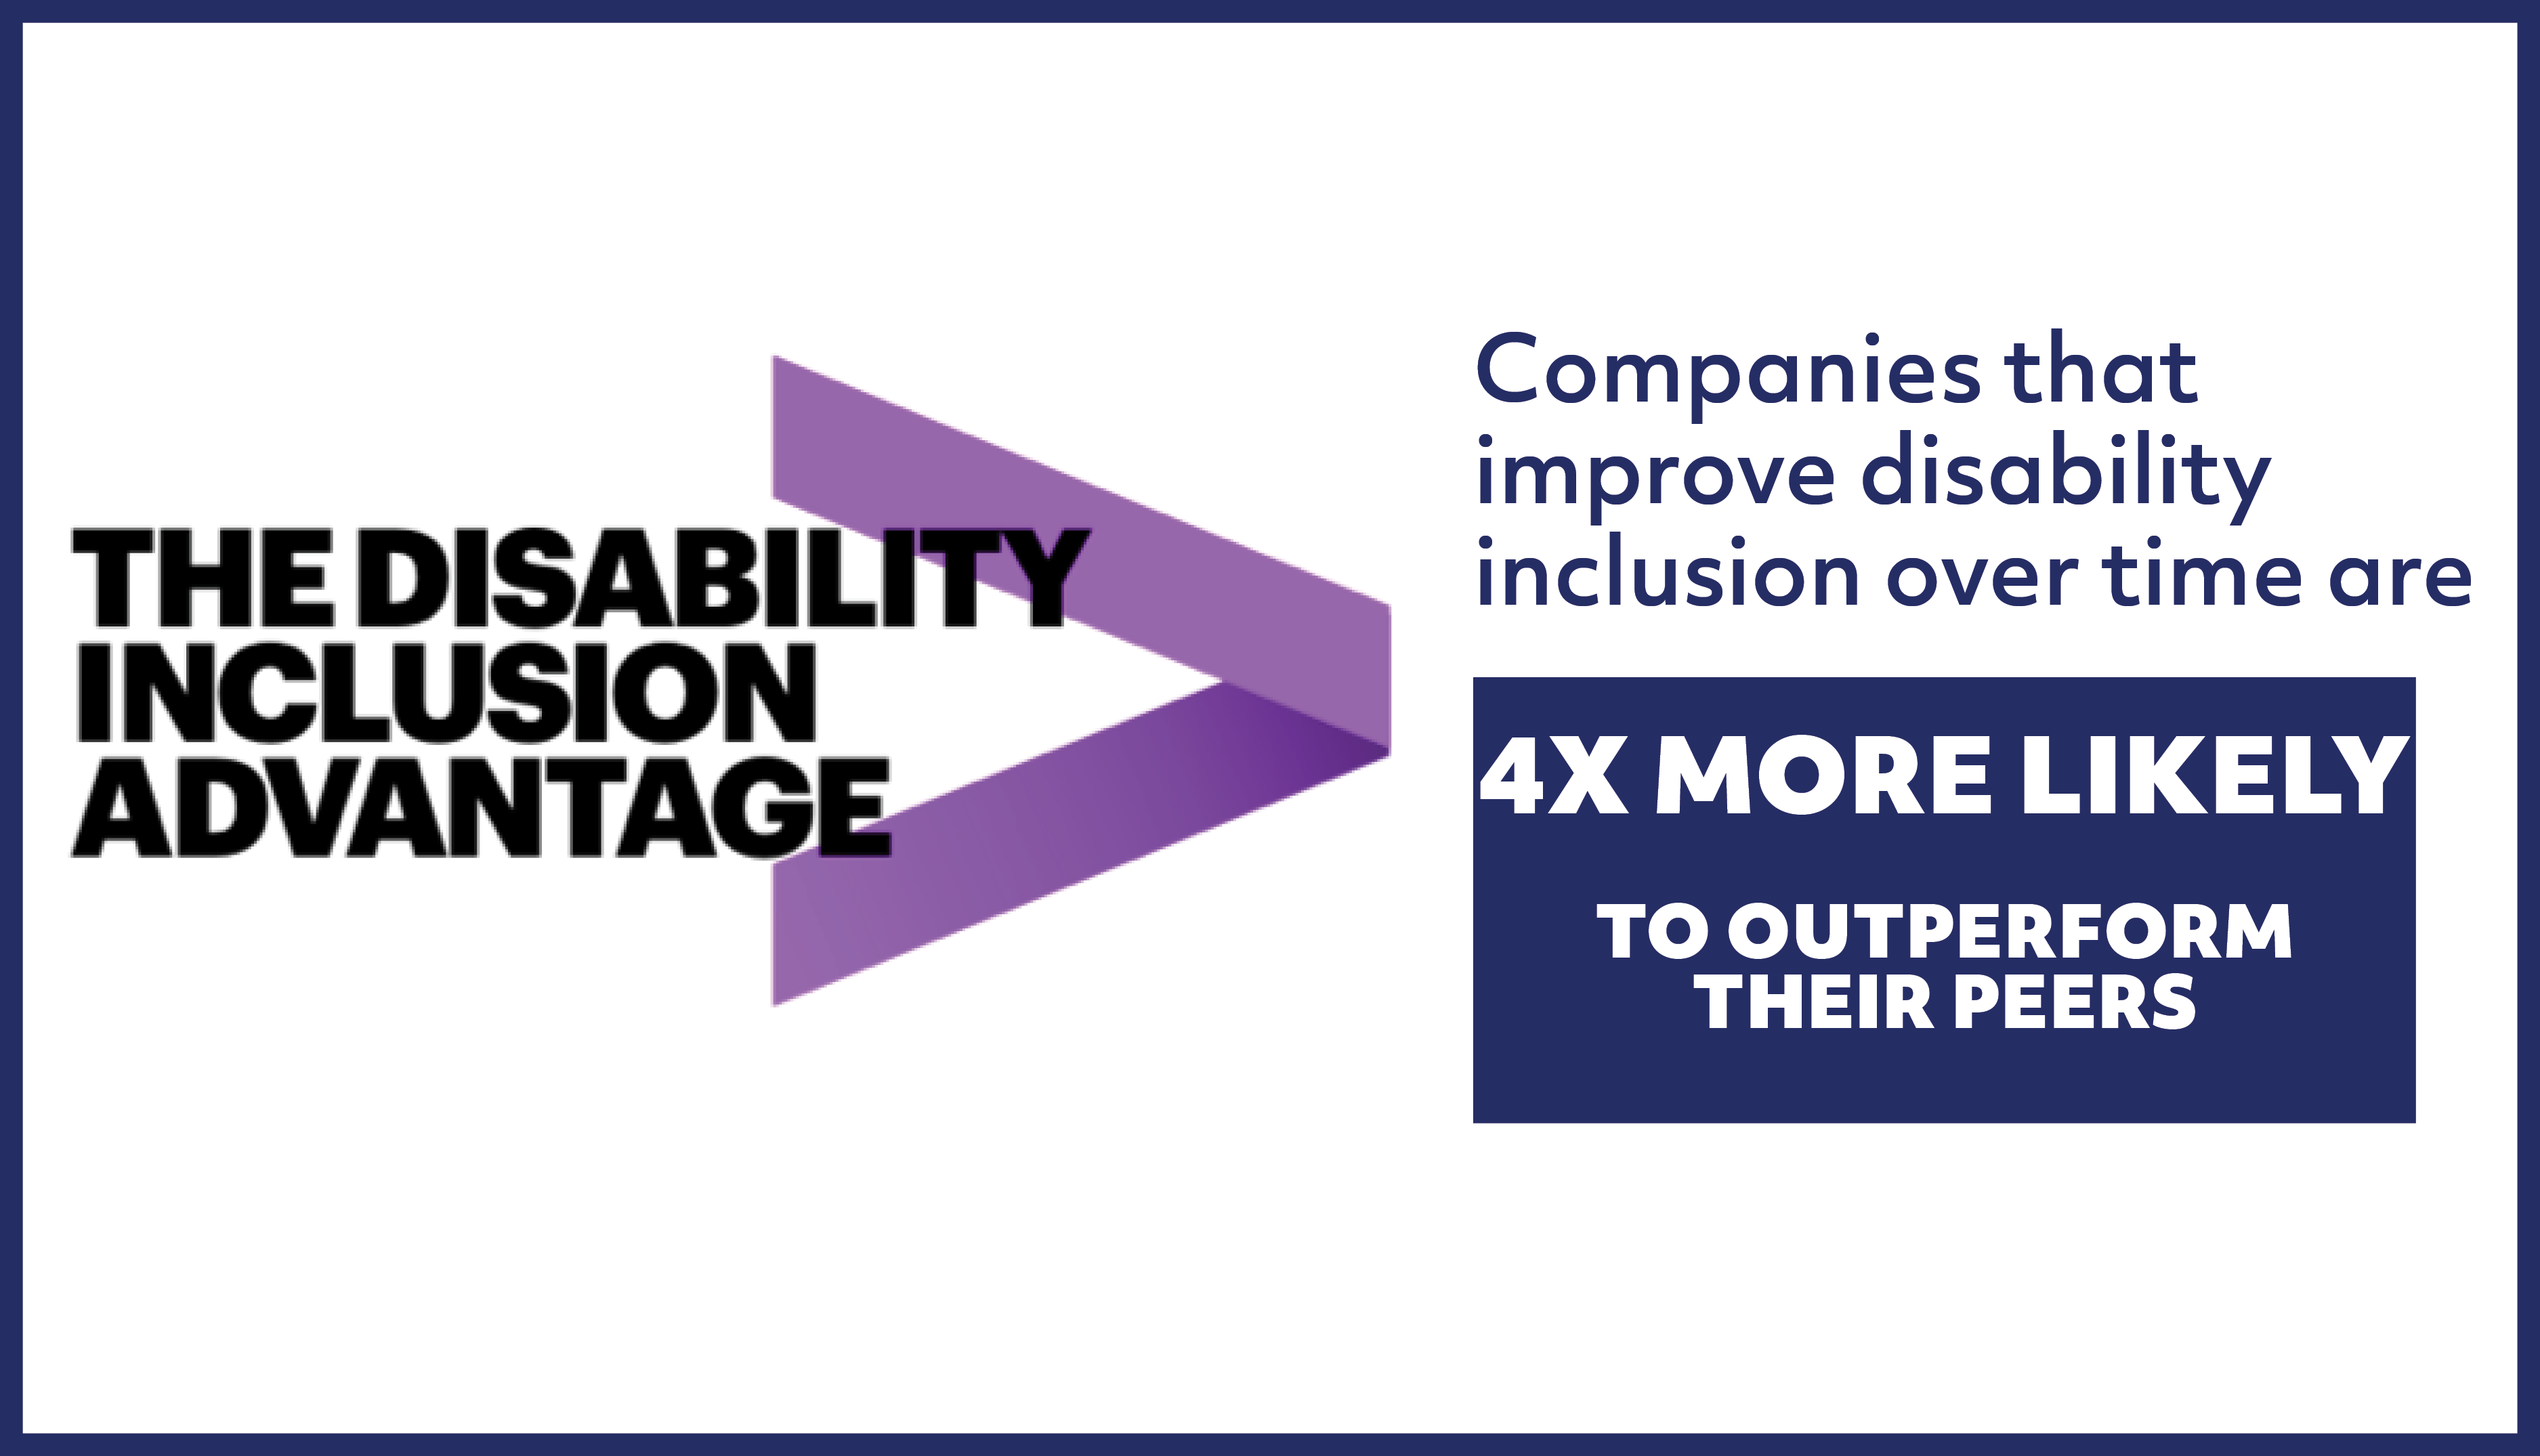 Image banner that reads, The Disability Inclusion Advantage. Companies that improve disability inclusion over time are 4x more likely to outperform their peers.